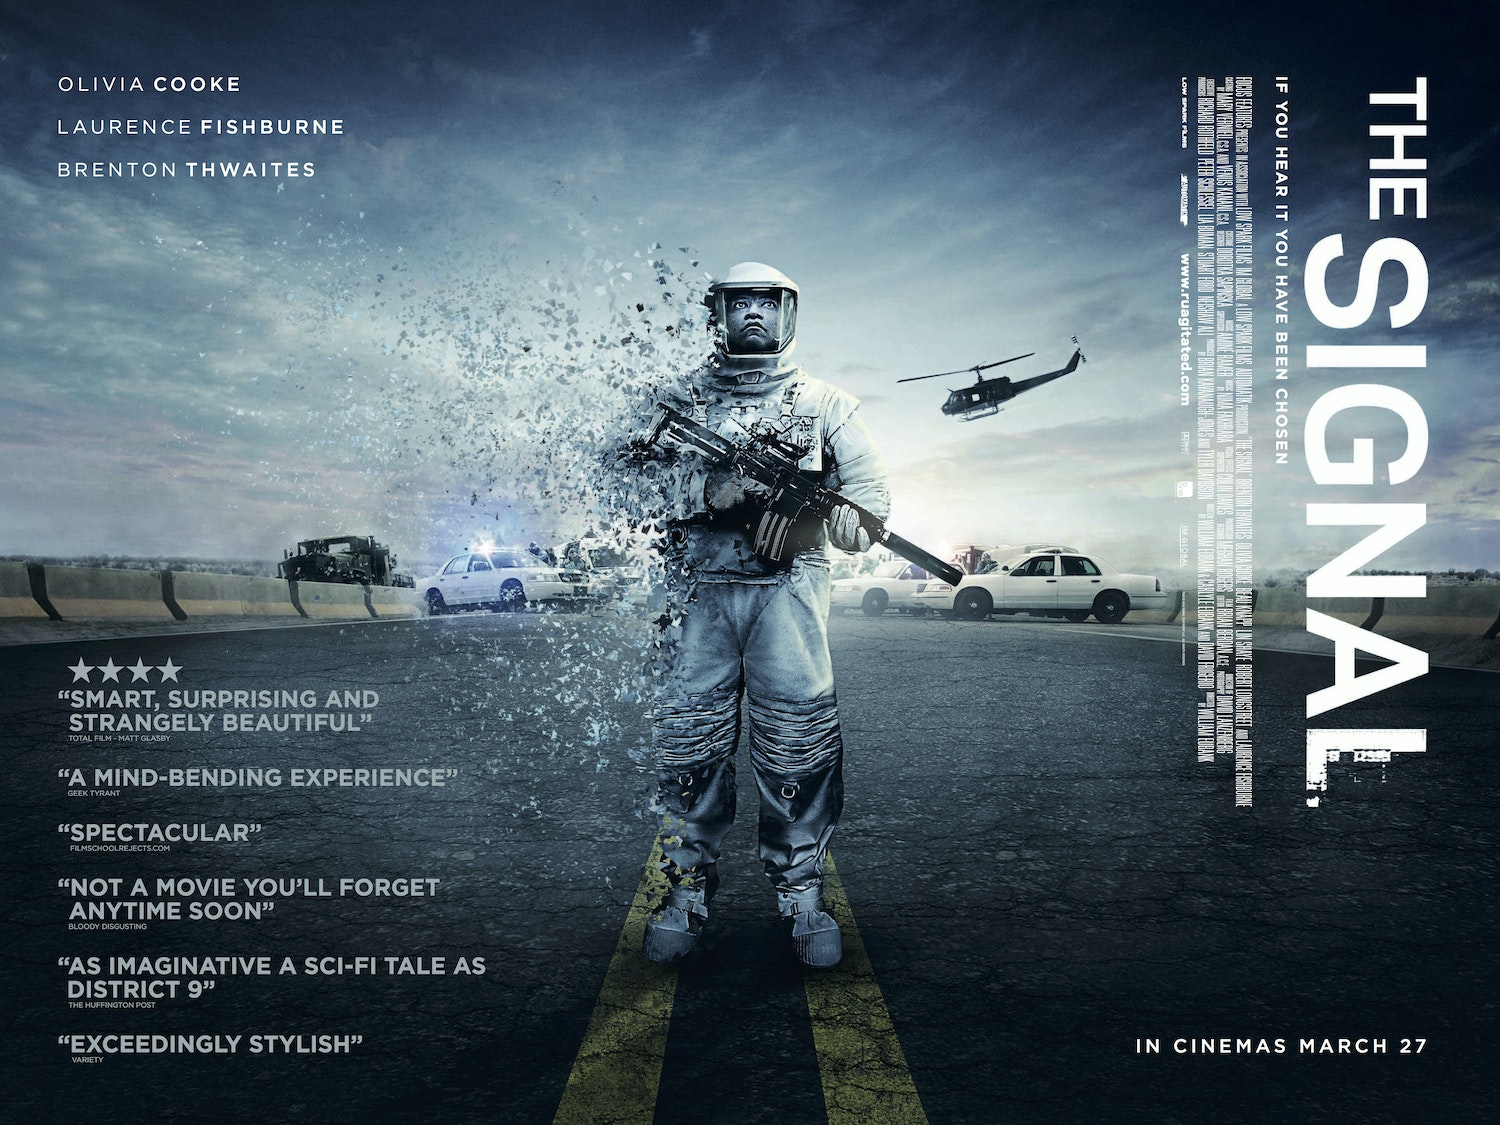 The Best In Sci-Fi with THE SIGNAL sweepstakes